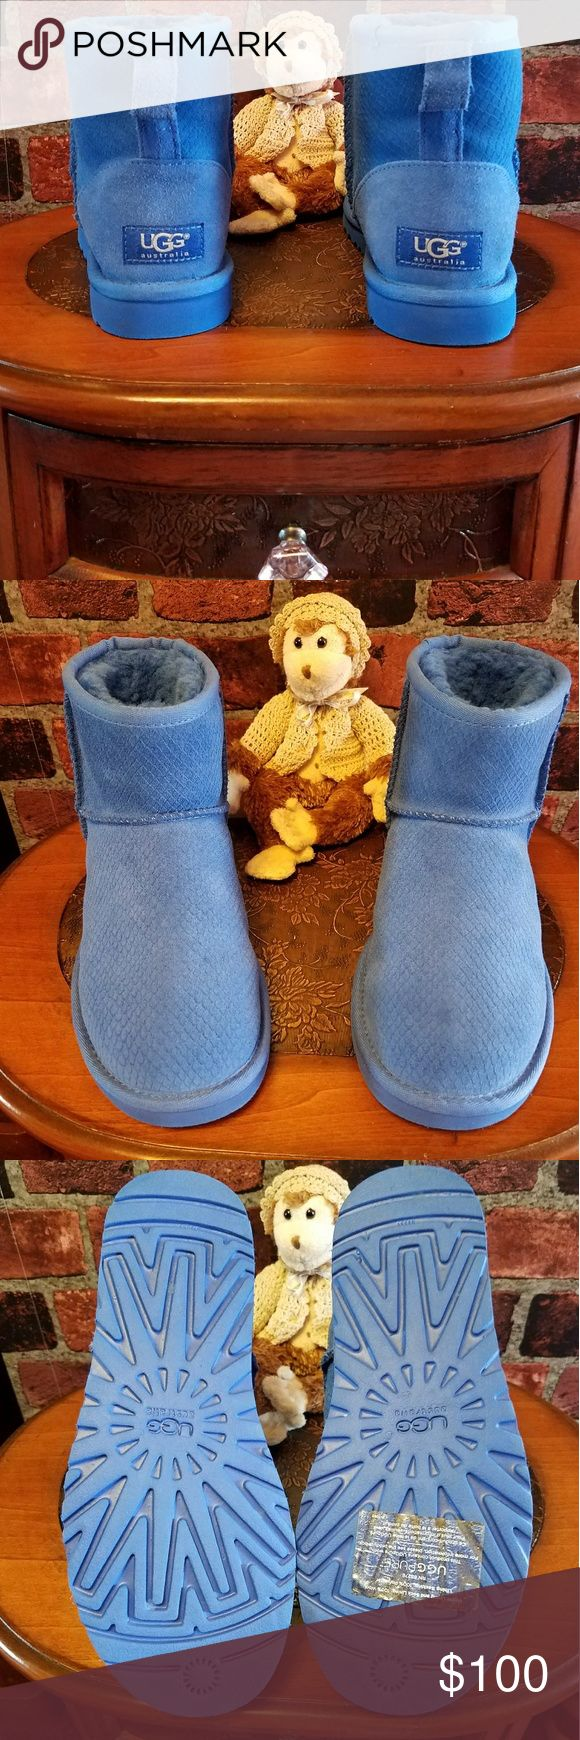 Women's Uggs NO BOX. New without box. Beautiful color blue🌸 Women's size 6 Uggs Shoes Ankle Boots & Booties